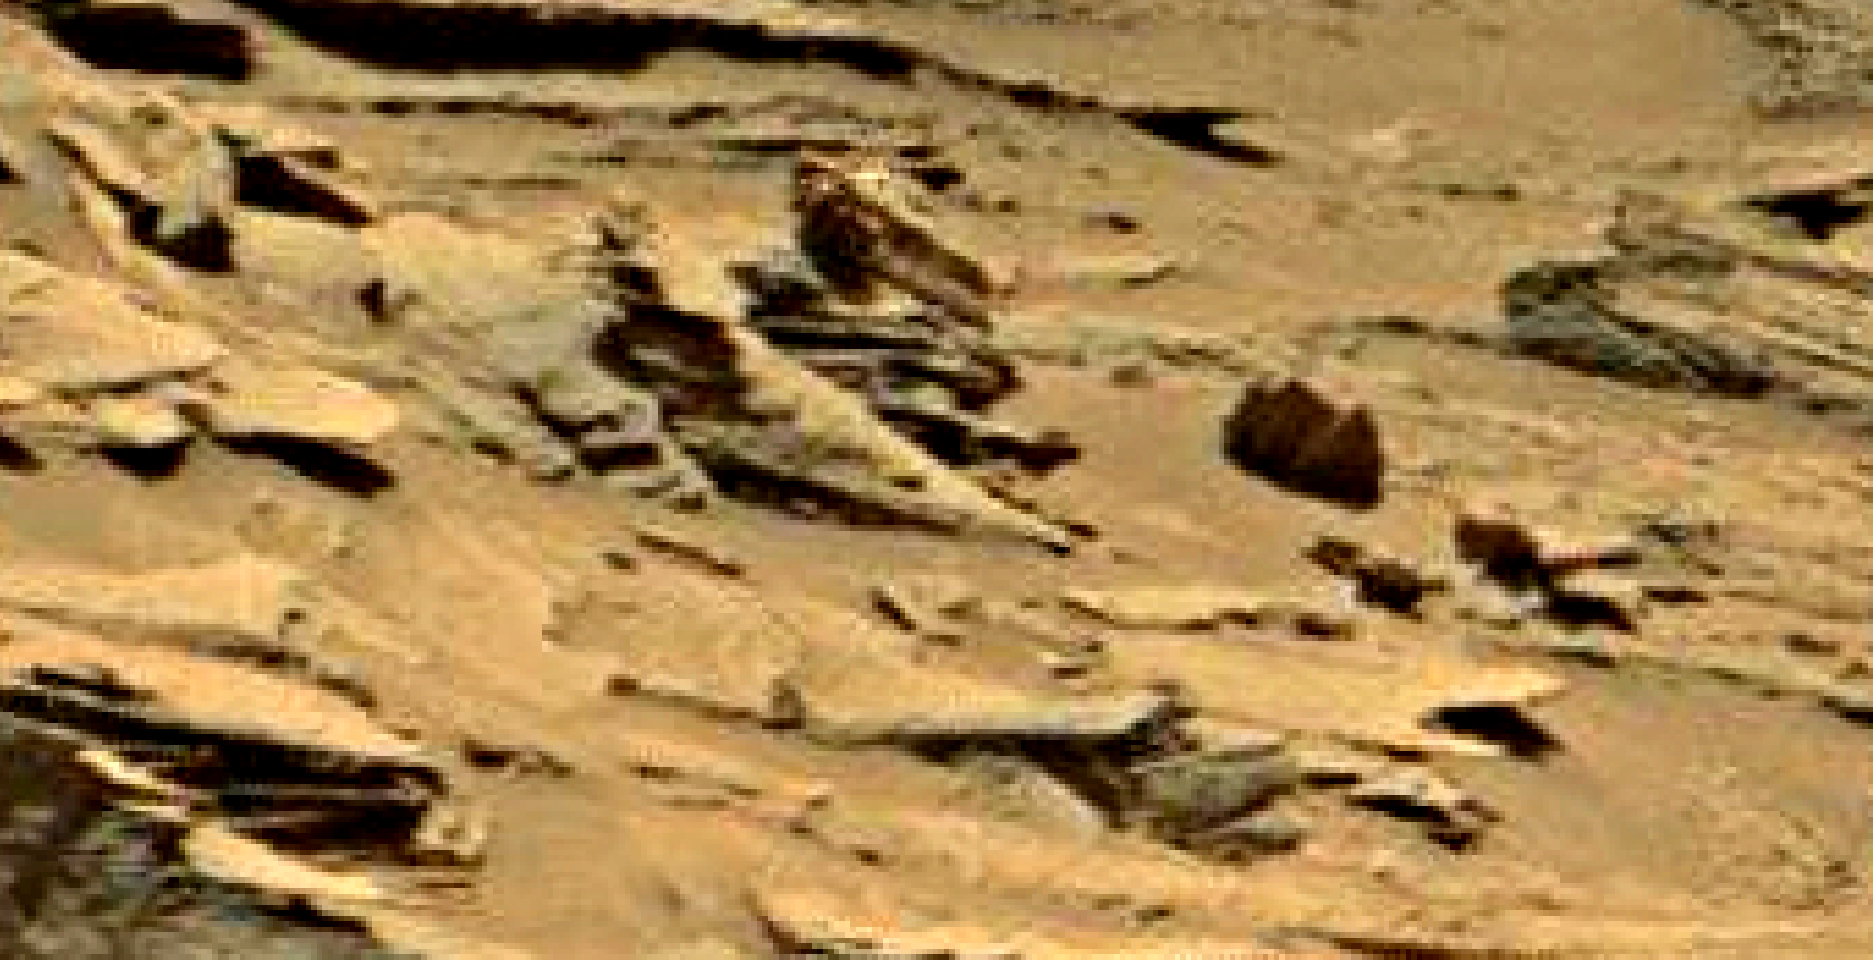 mars sol 1353 anomaly-artifacts 29 was life on mars